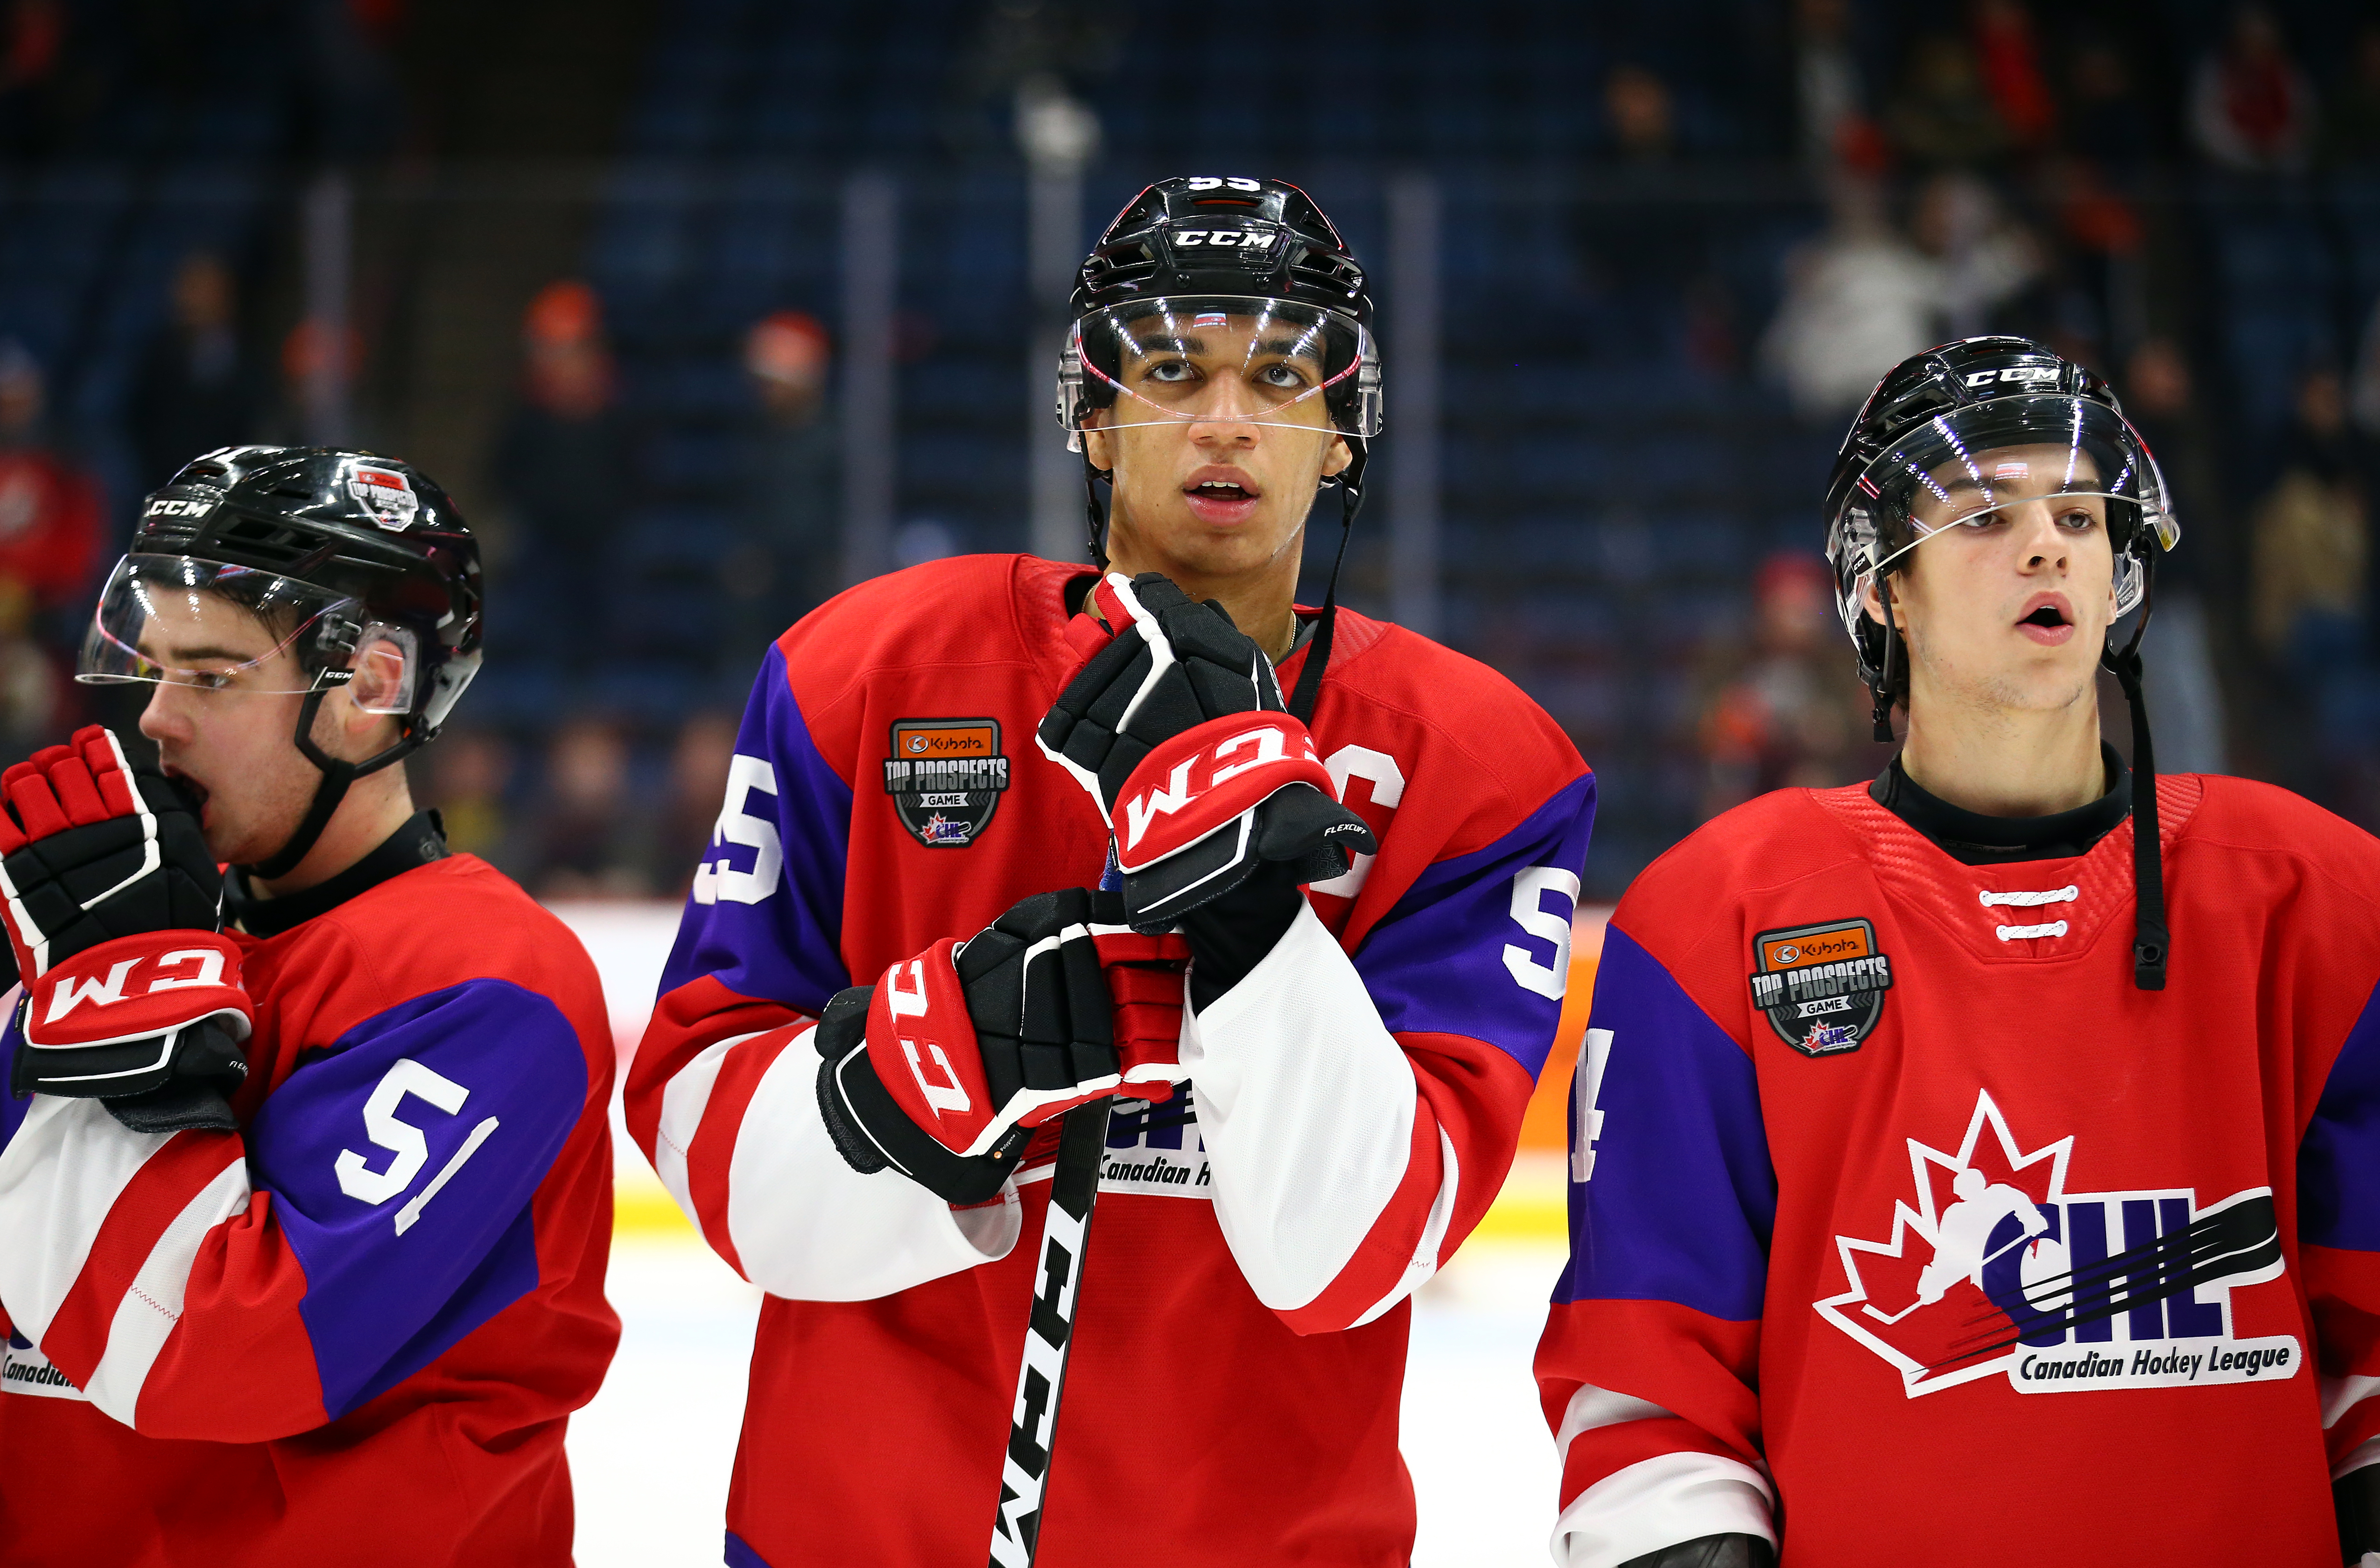 Quinton Byfield #55 of Team Red looks on following defeat to Team White in the 2020 CHL/NHL Top Prospects Game at First Ontario Centre on January 16, 2020 in Hamilton, Canada.